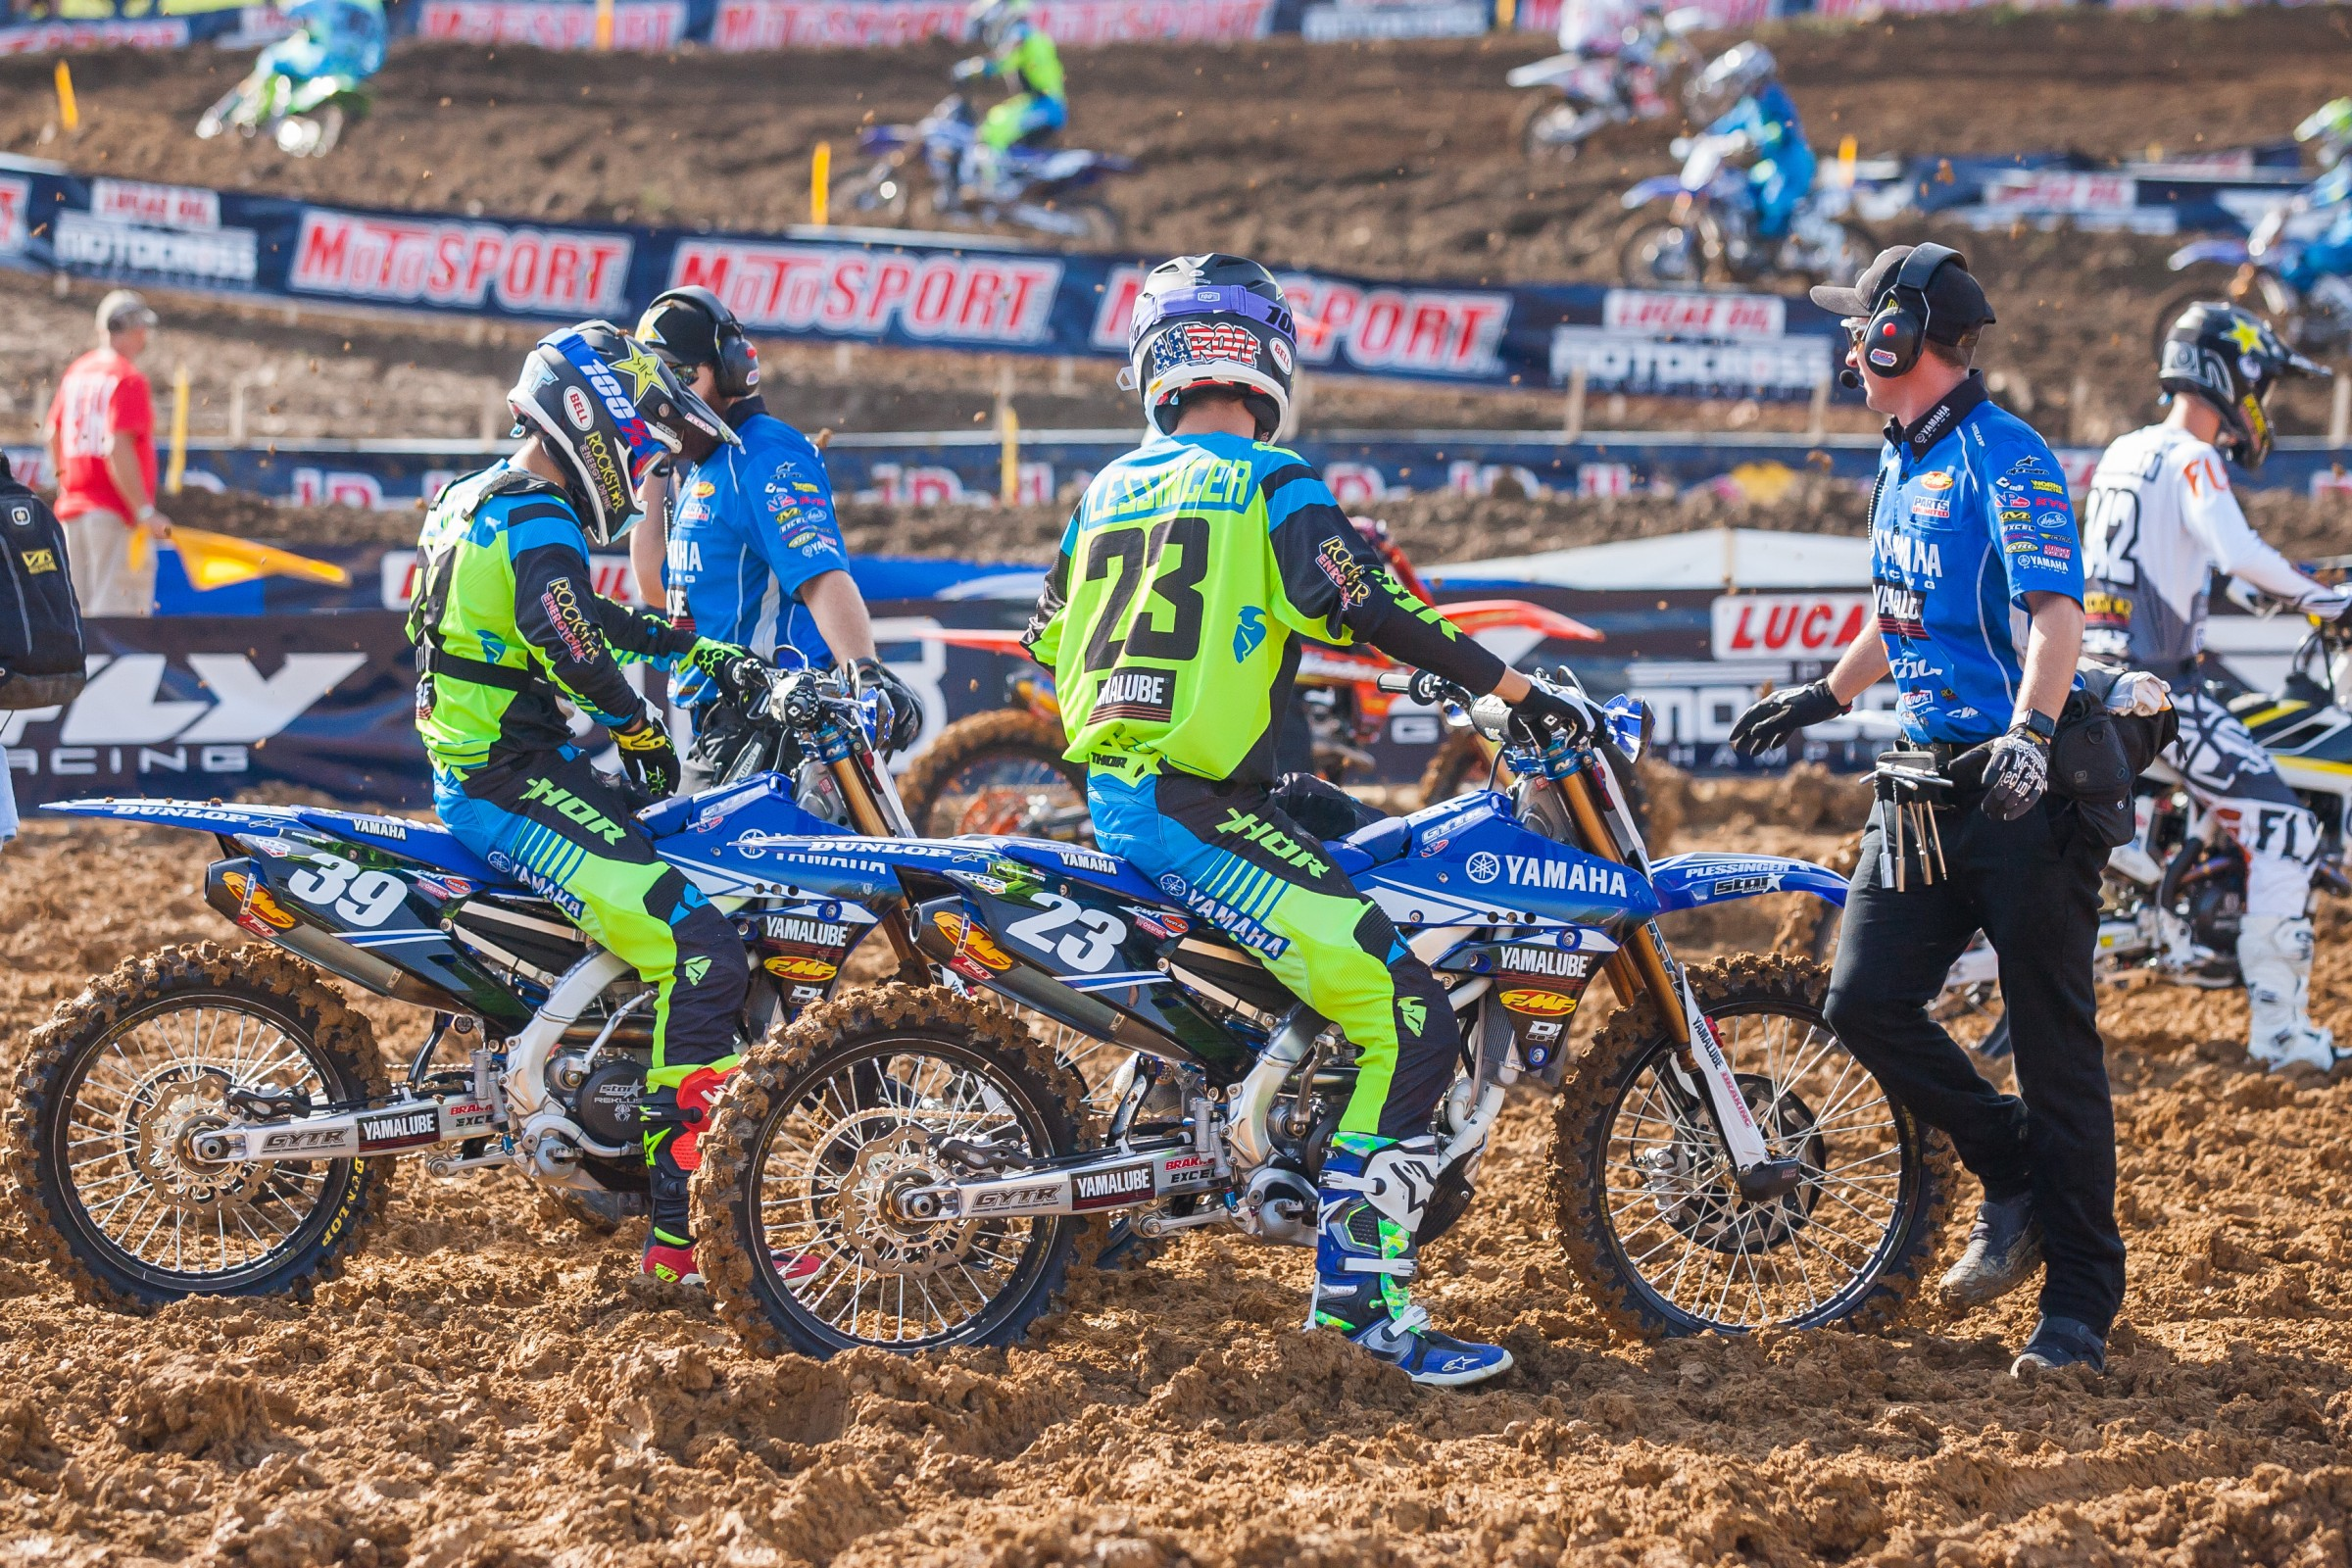 During practice High Point was about as muddy of a track as we have seen this year, and even that turned out decent by the time the motos came around. Weege had some buddies praying for more rain to try to prove his theory wrong, but the motos turned out okay.